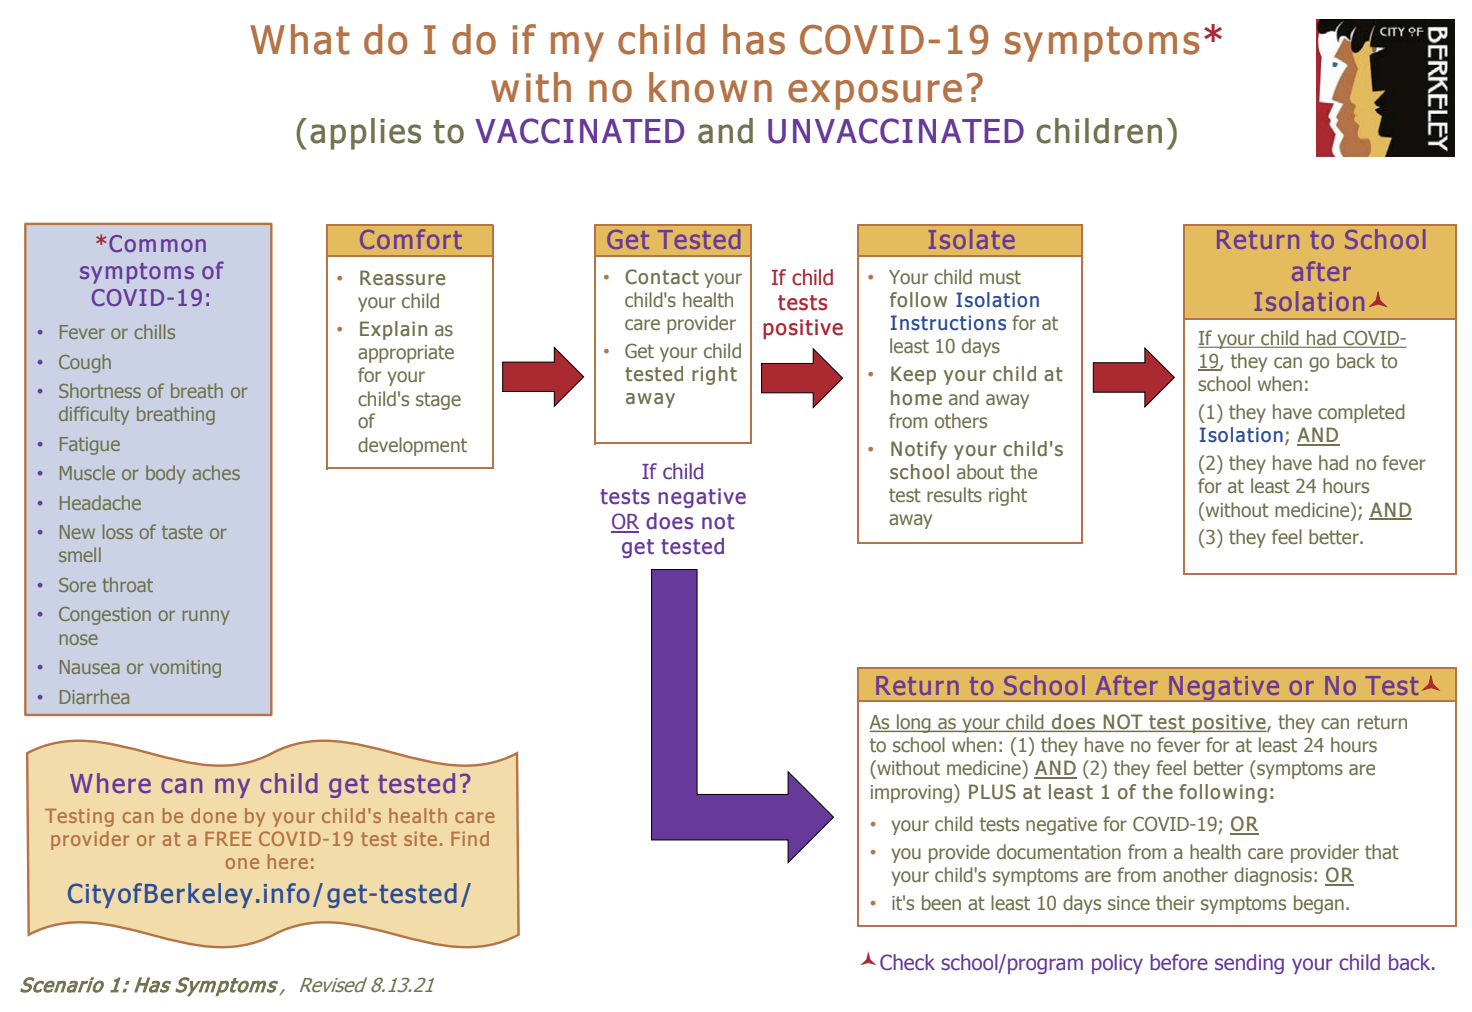 What do I do if my child has COVID-19 symptoms with no known exposure?